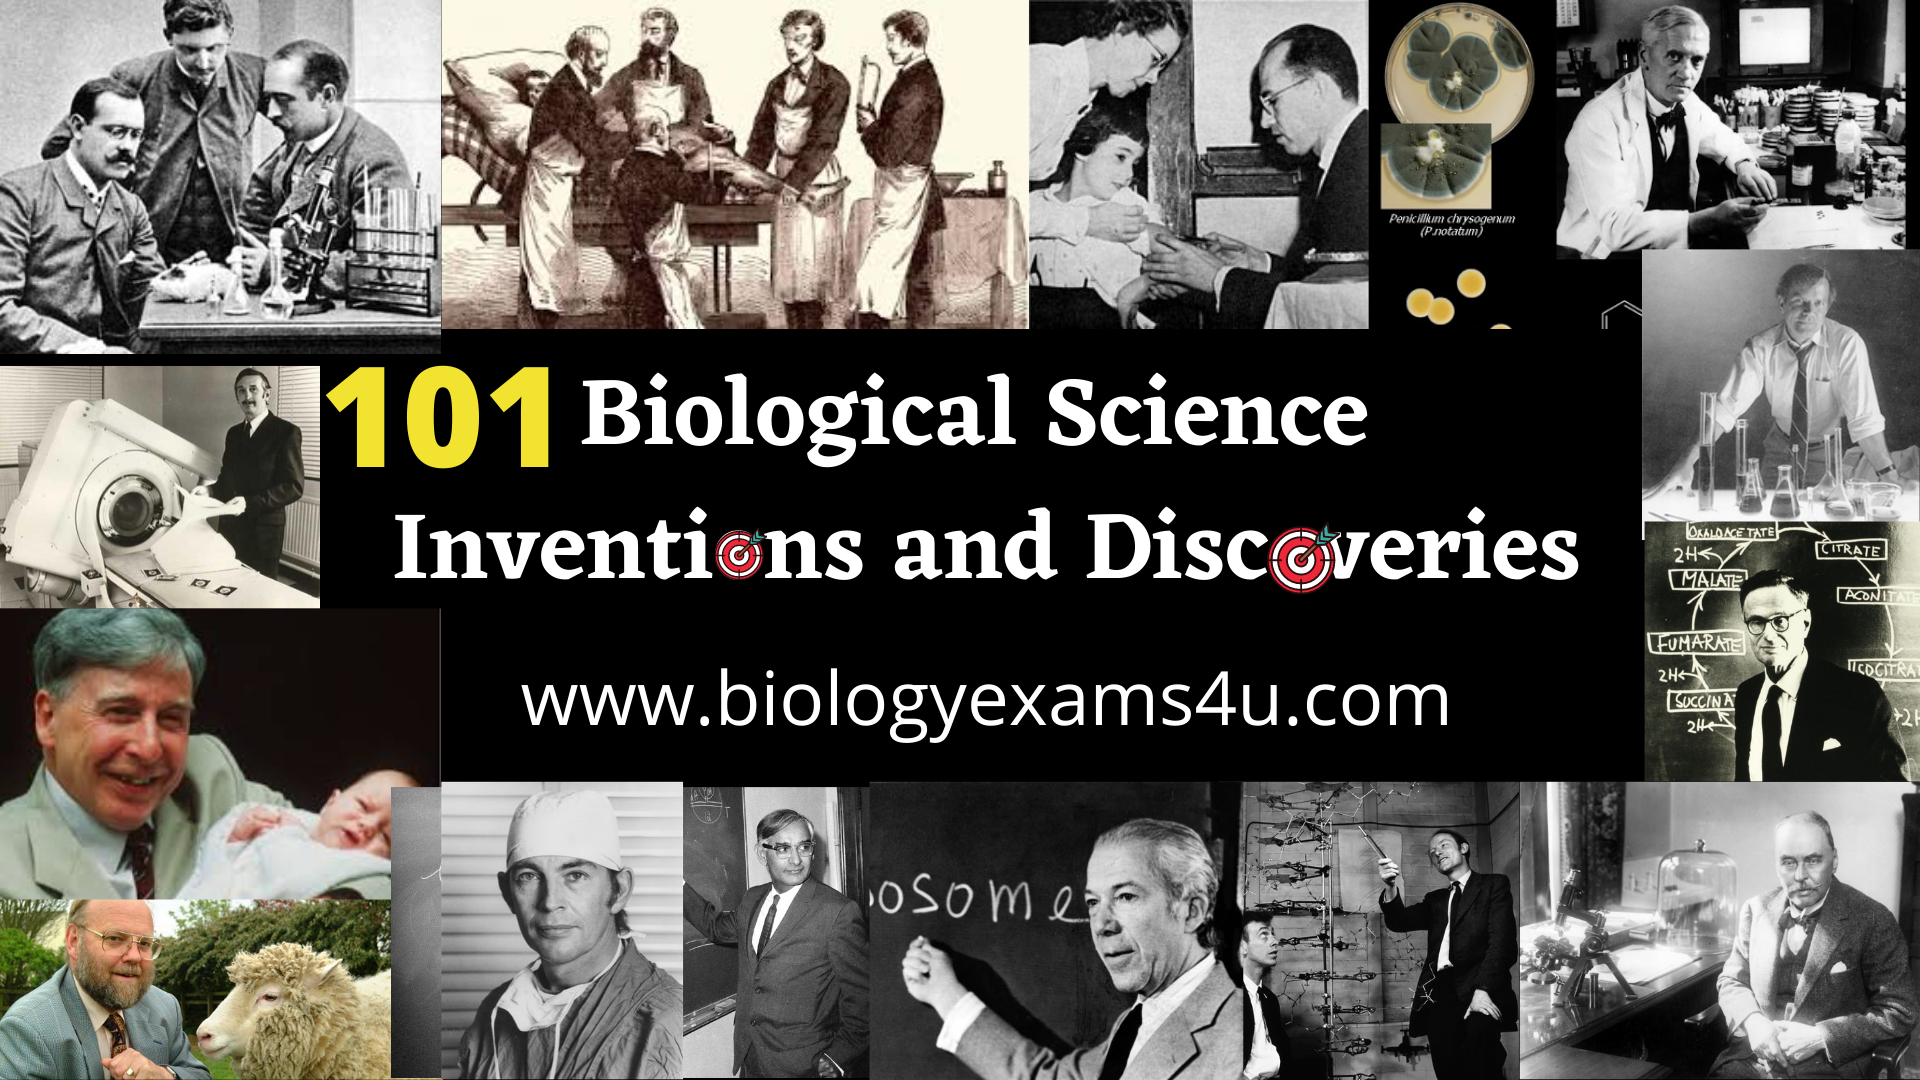 101 Biological Science Inventions and Discoveries